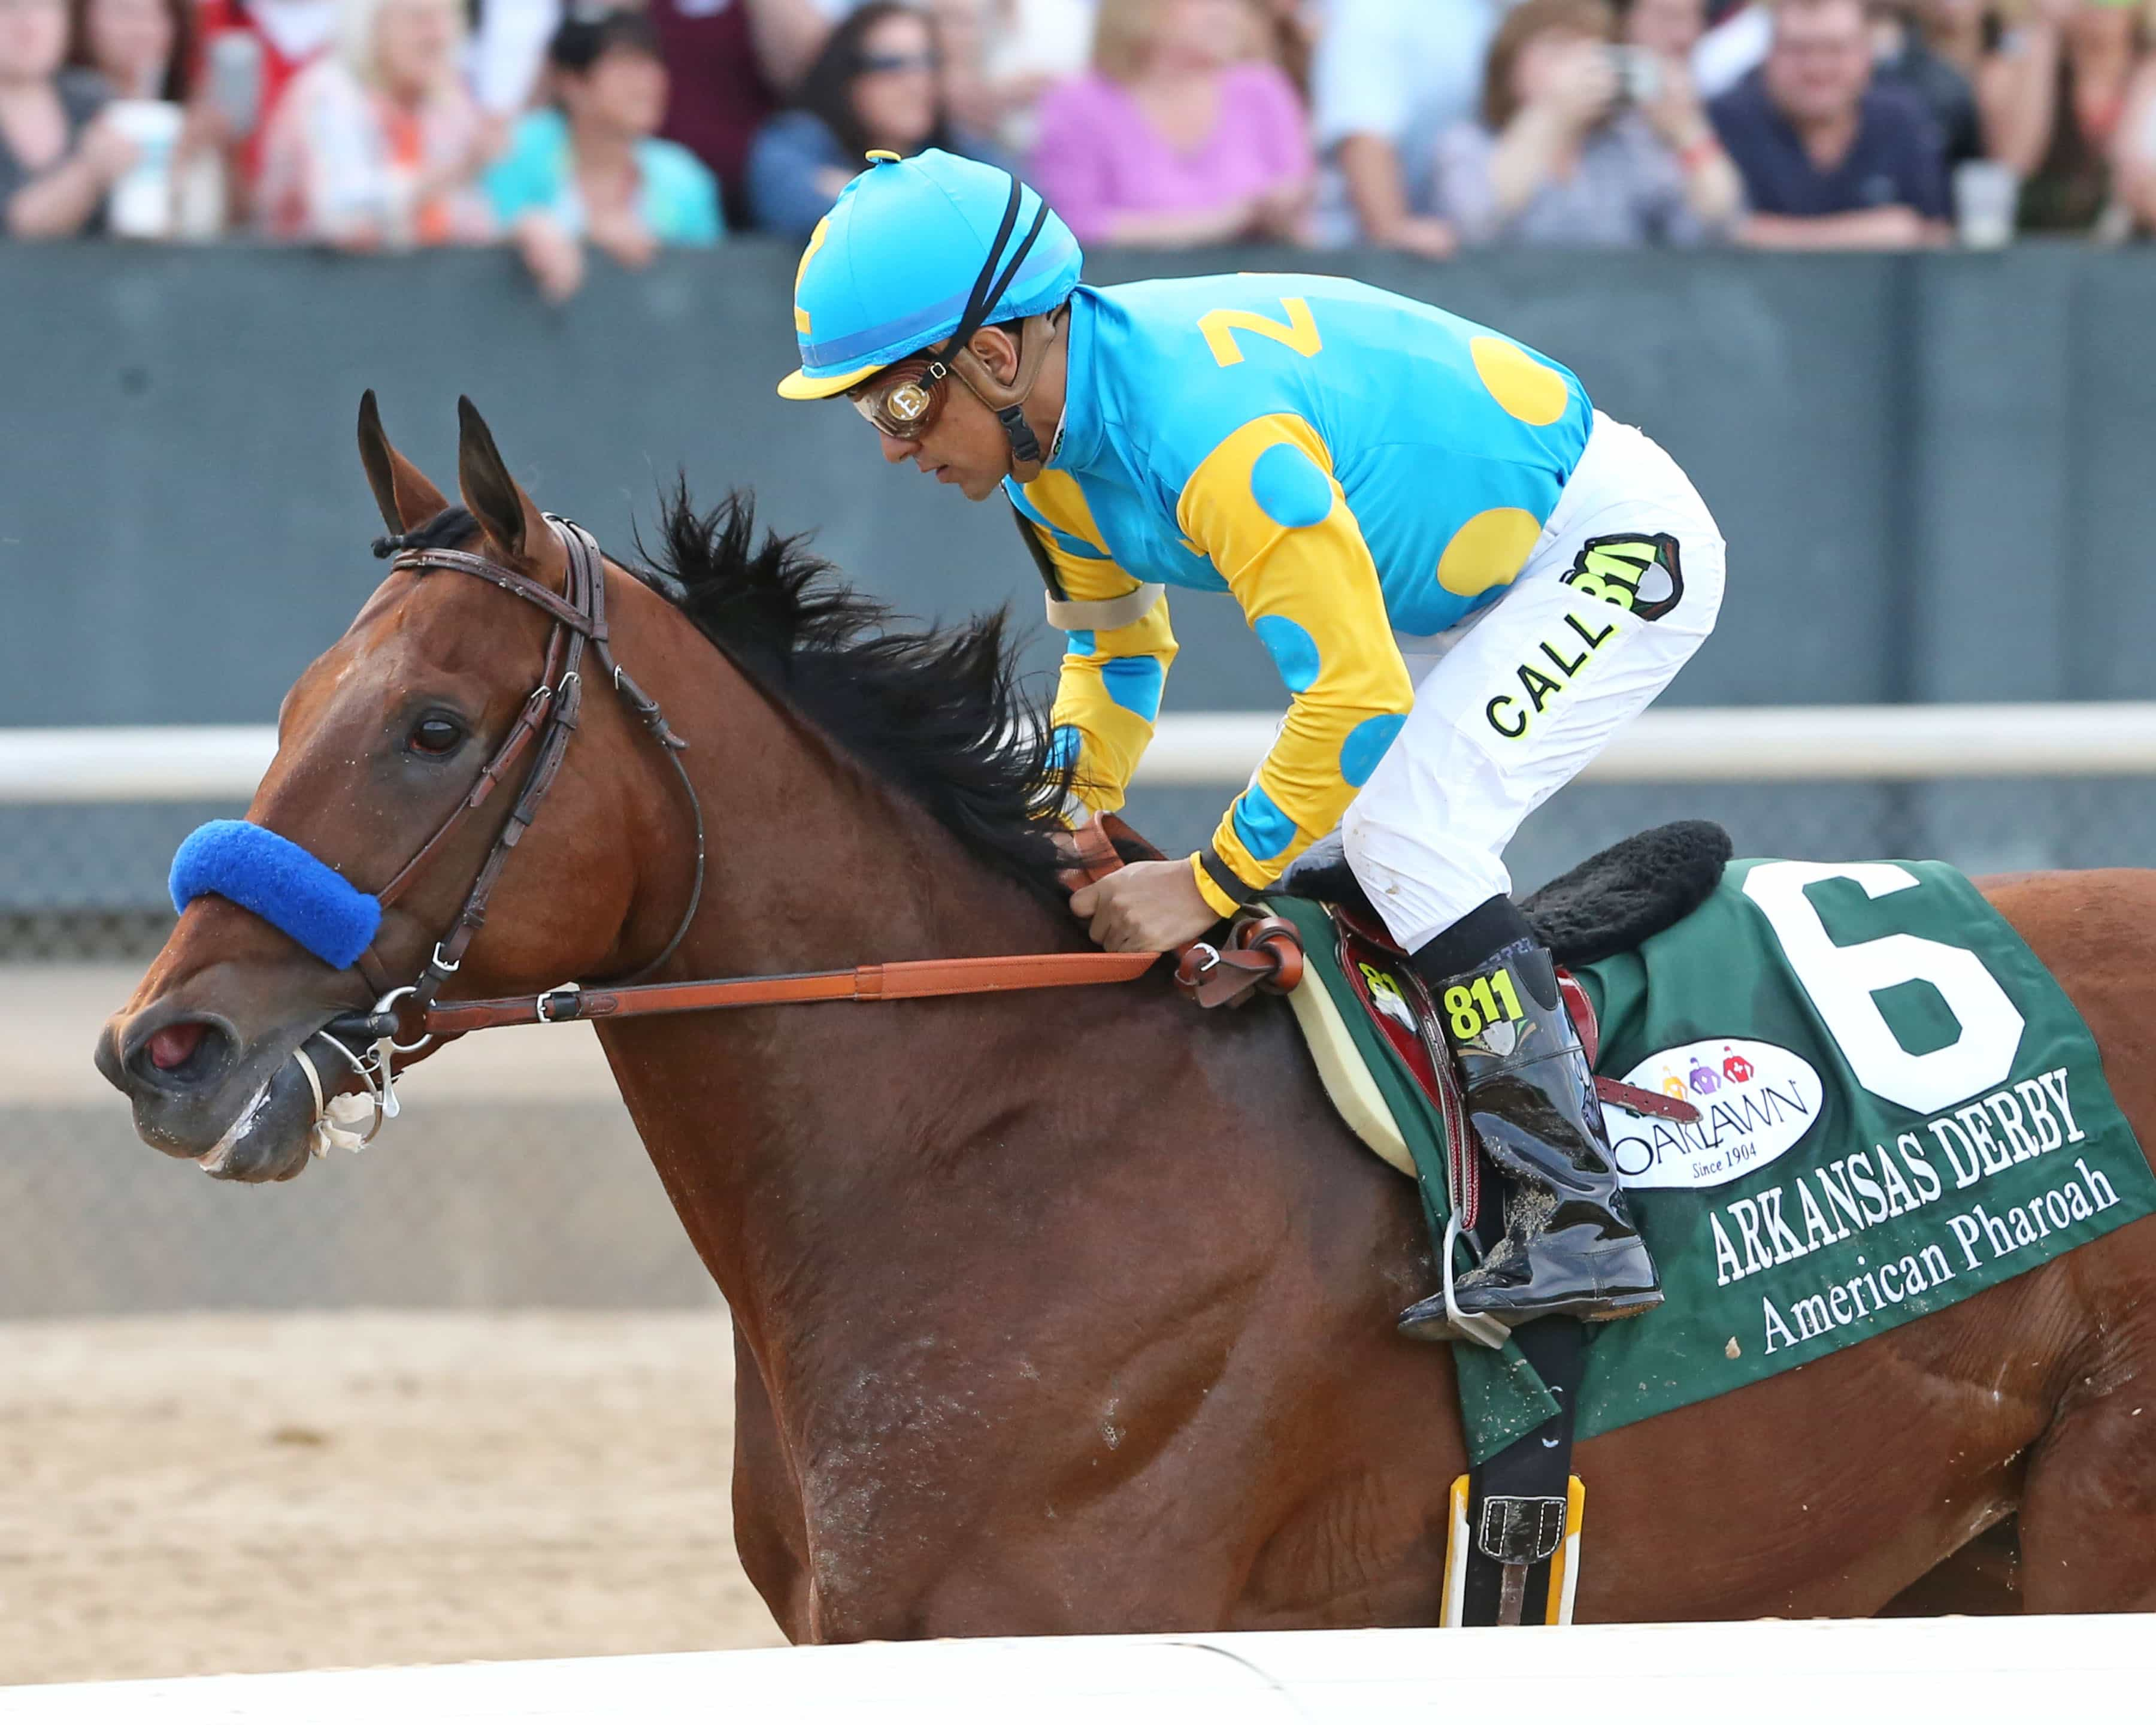 American Pharoah - THE ARKANSAS DERBY 79th Running (Grade I) - 04-11-15 - R11 - OP - 002 - Photo credit: Oaklawn/Coady Photography